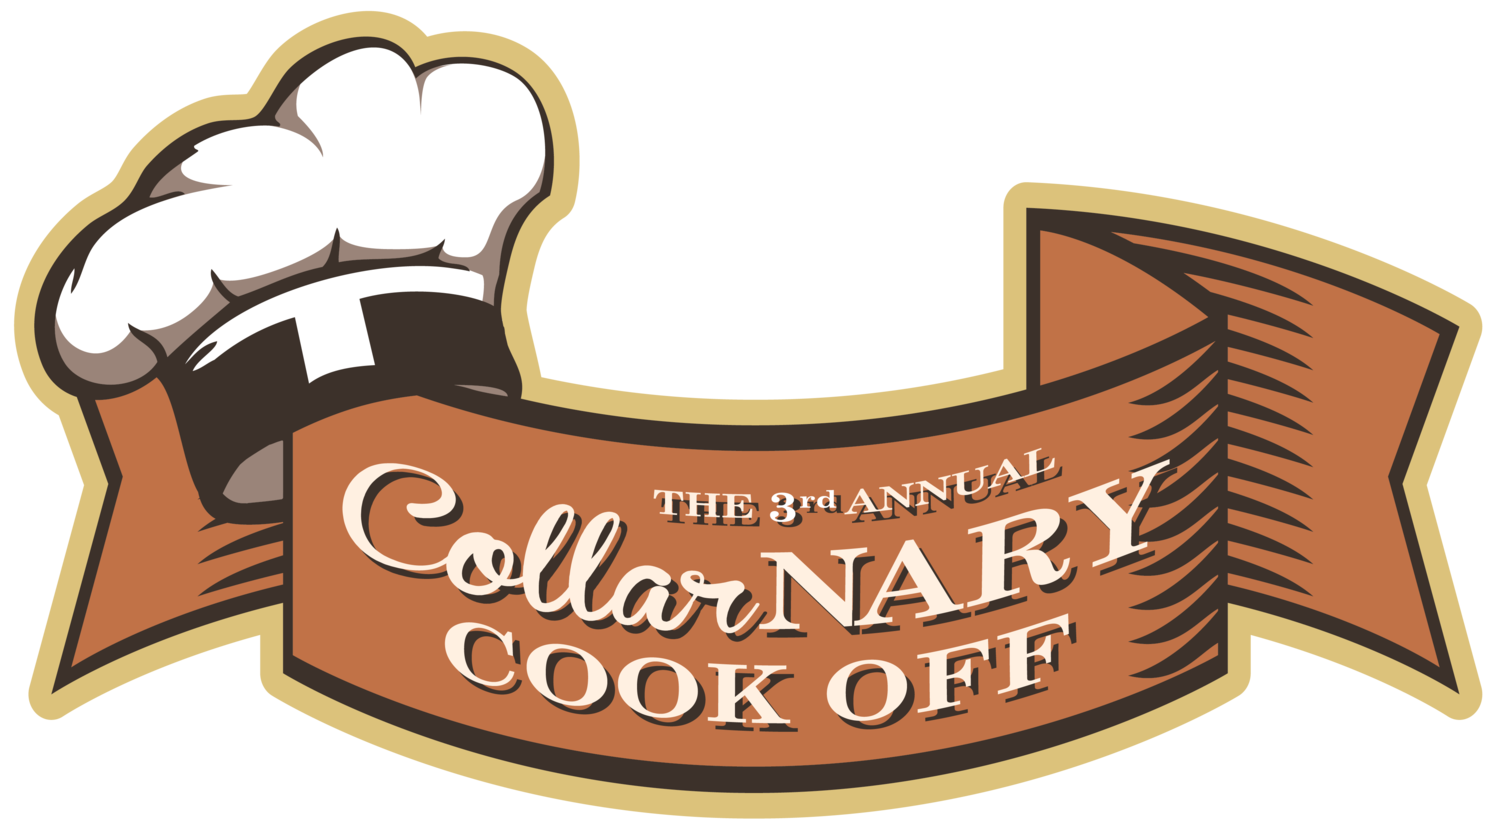 Collarnary Cook Off